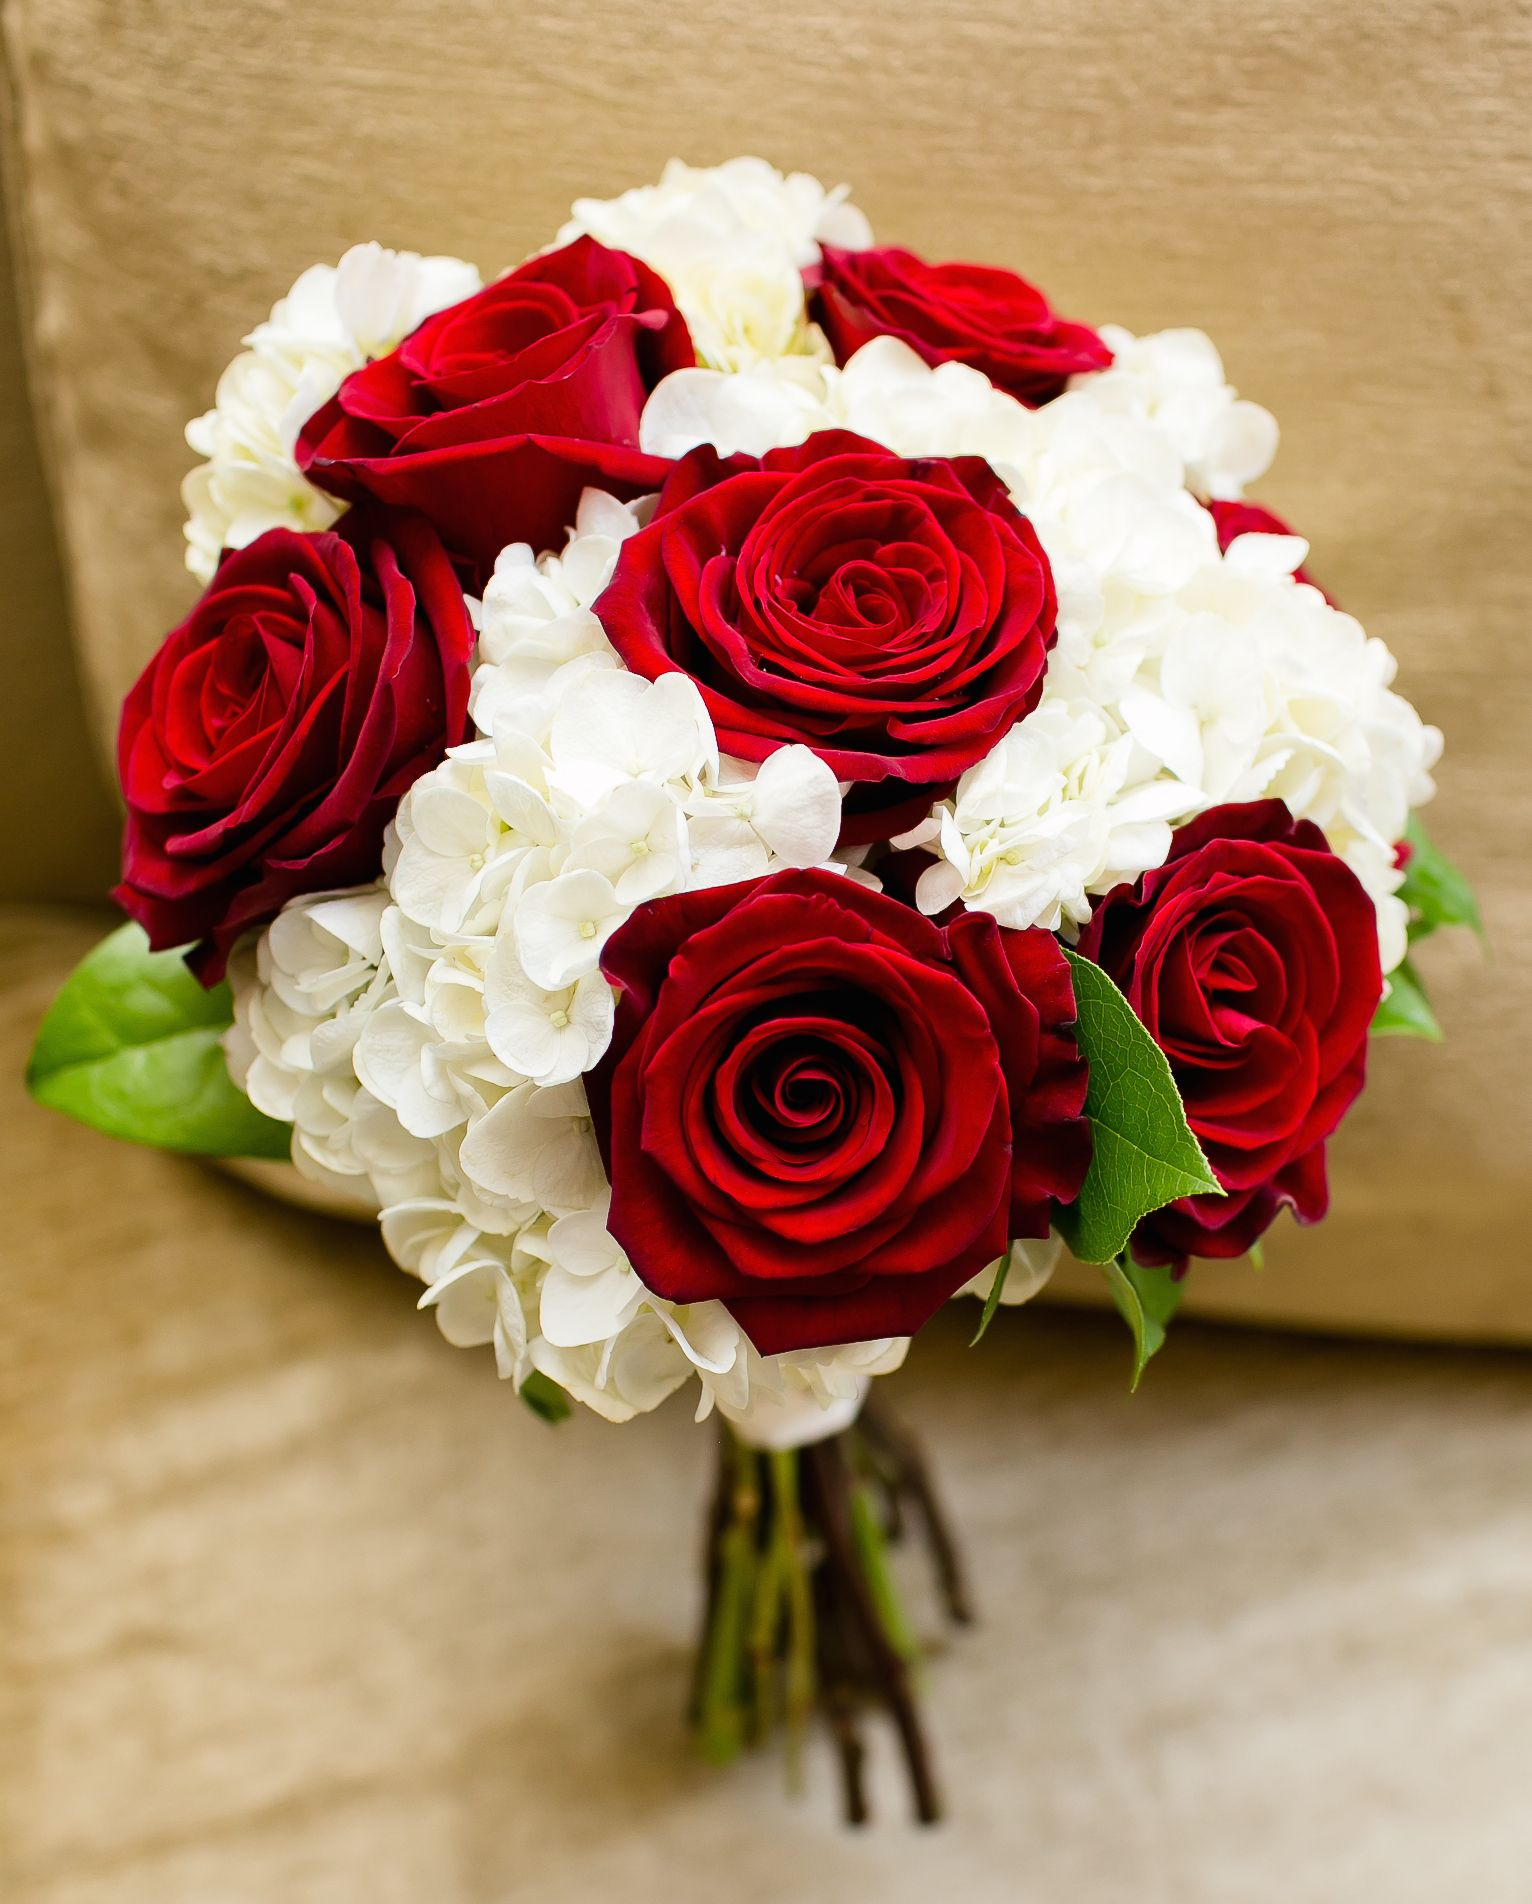 Classic Wedding Bouquets: Red Roses And White Hydrangeas. Classic Bouquet For A Fall